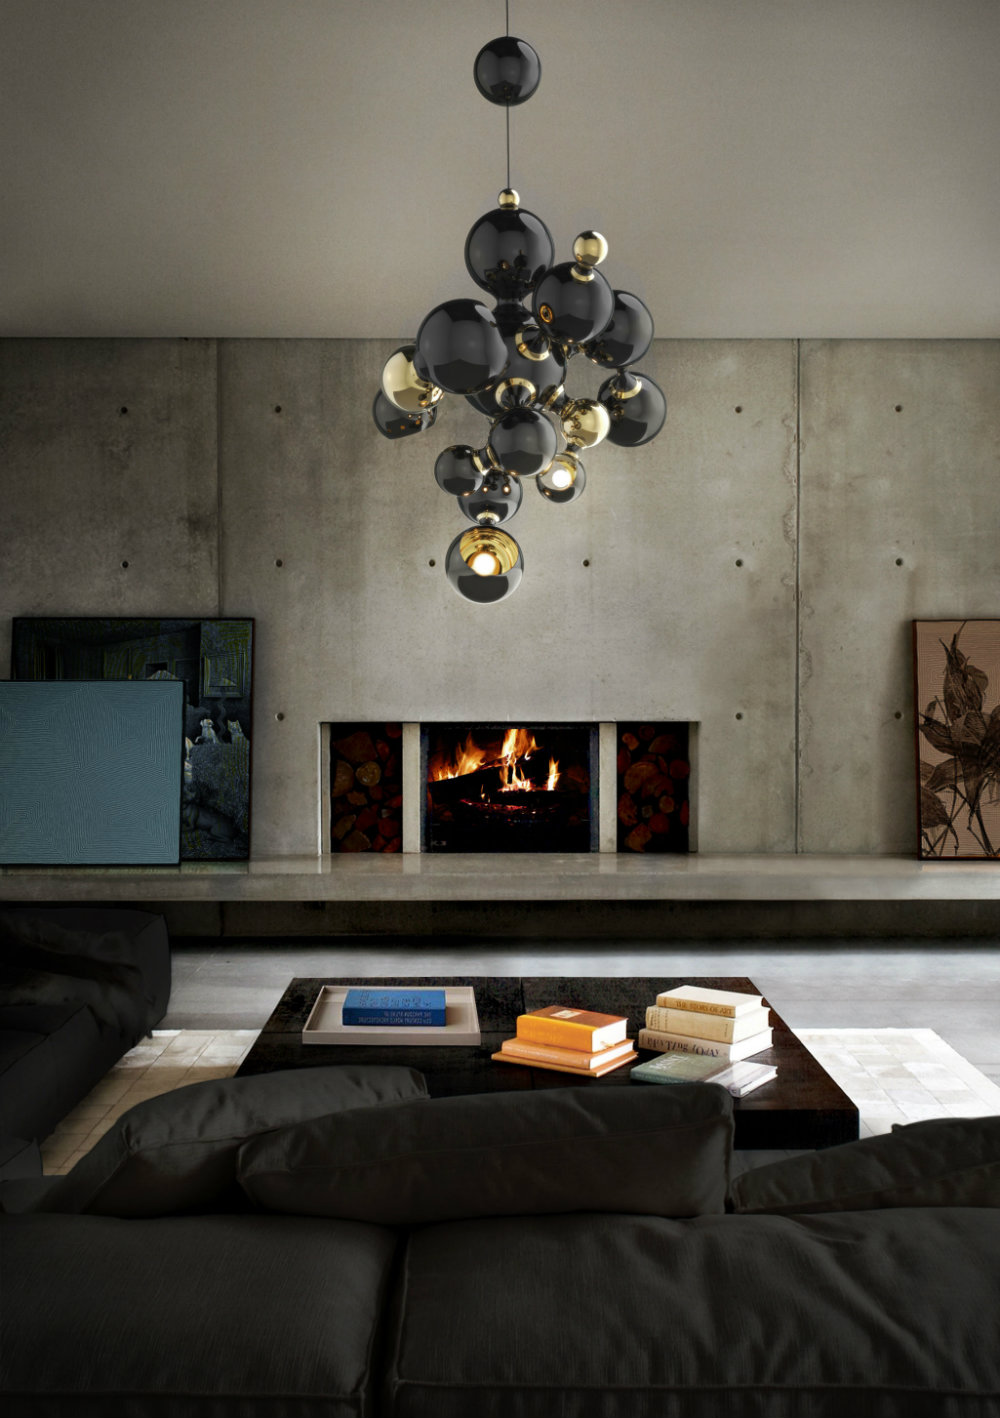 7 Stylish Suspension Lamps For Your Home Decor suspension lamps 7 Stylish Suspension Lamps For Your Home Decor 7 Stylish Suspension Lamps For Your Home Decor 3